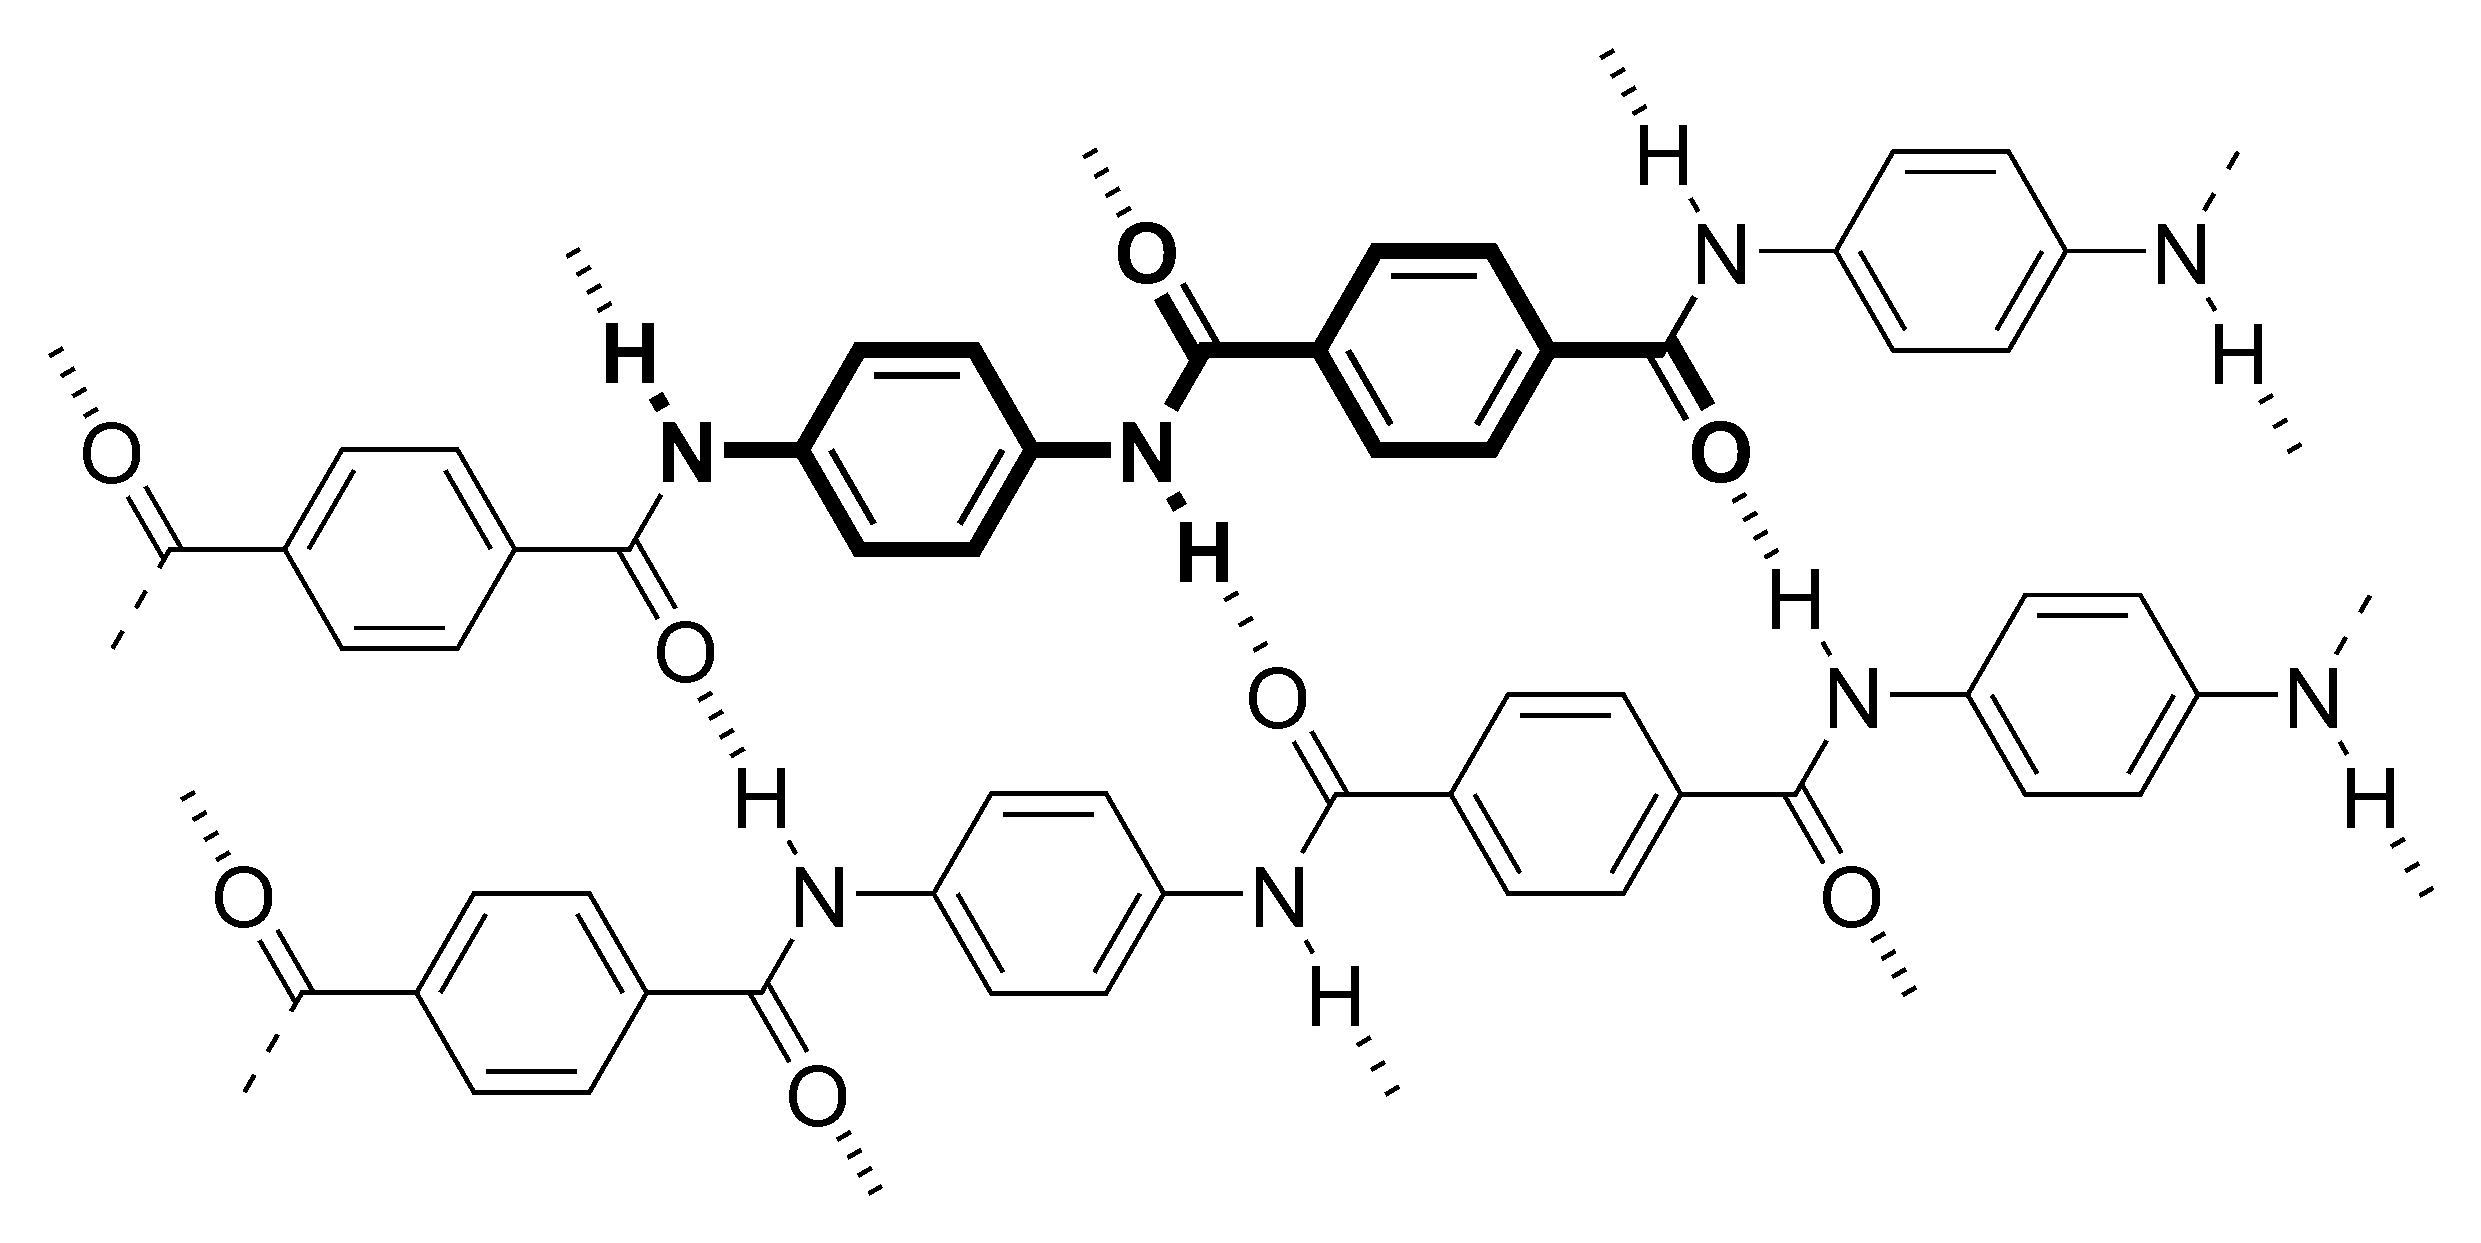 Kevlar_chemical_structure_H-bonds.png (2481×1243)